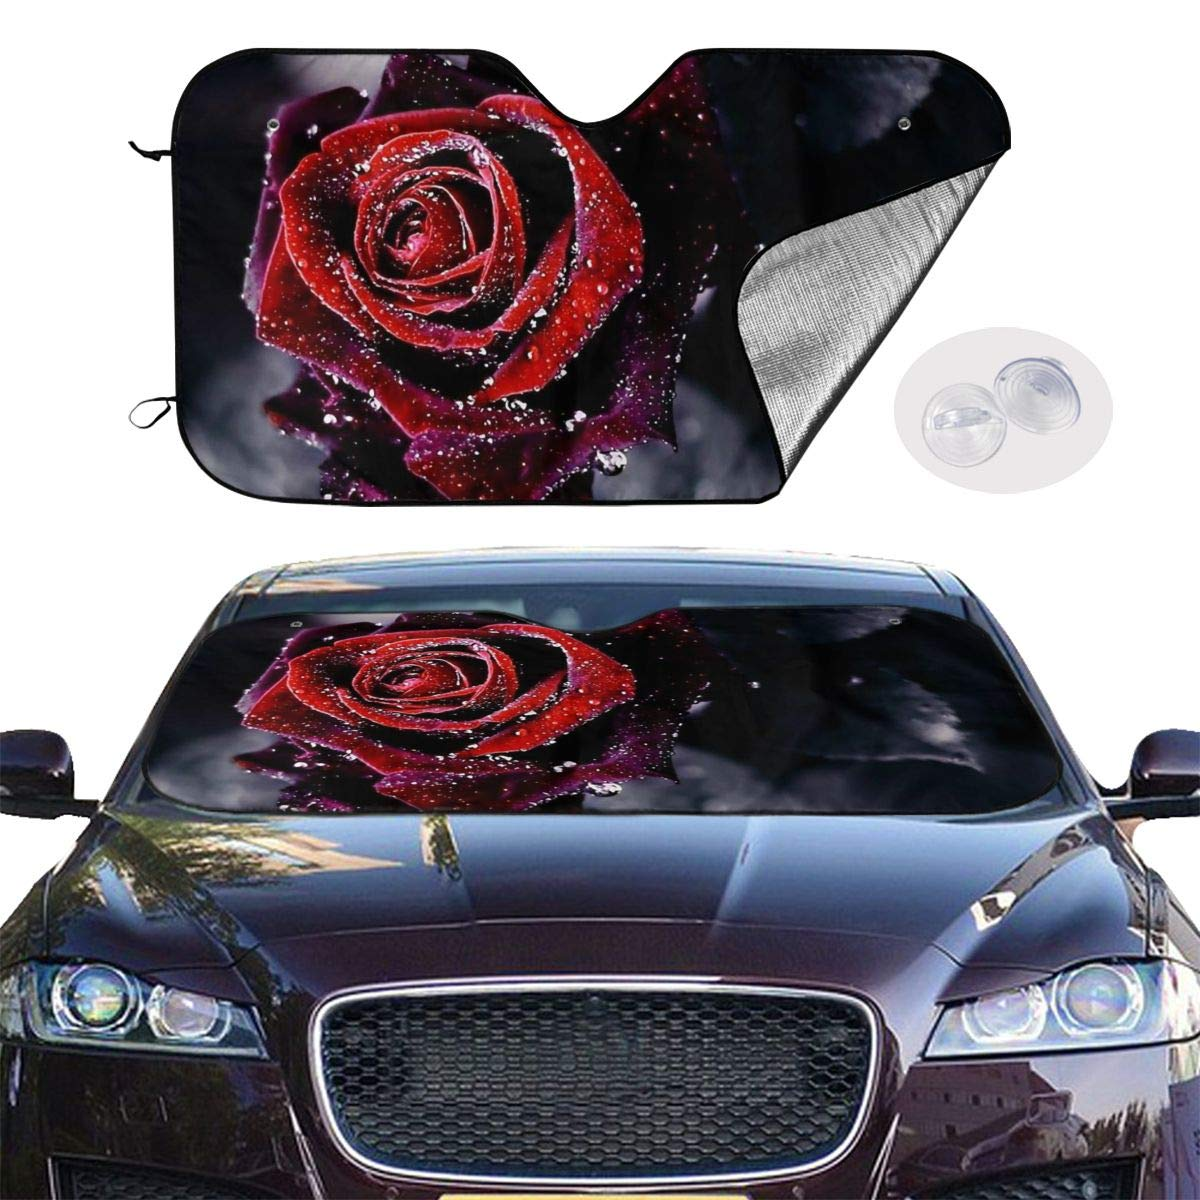 HE - Fashion Sun Shade, Windshield Sun Shade Water Rose Sunshades Keep Vehicle Cool Protect Your Car from Sun Heat & Glare Best UV Ray Visor Protector(Size: 55x30 Inches) by HE - Fashion